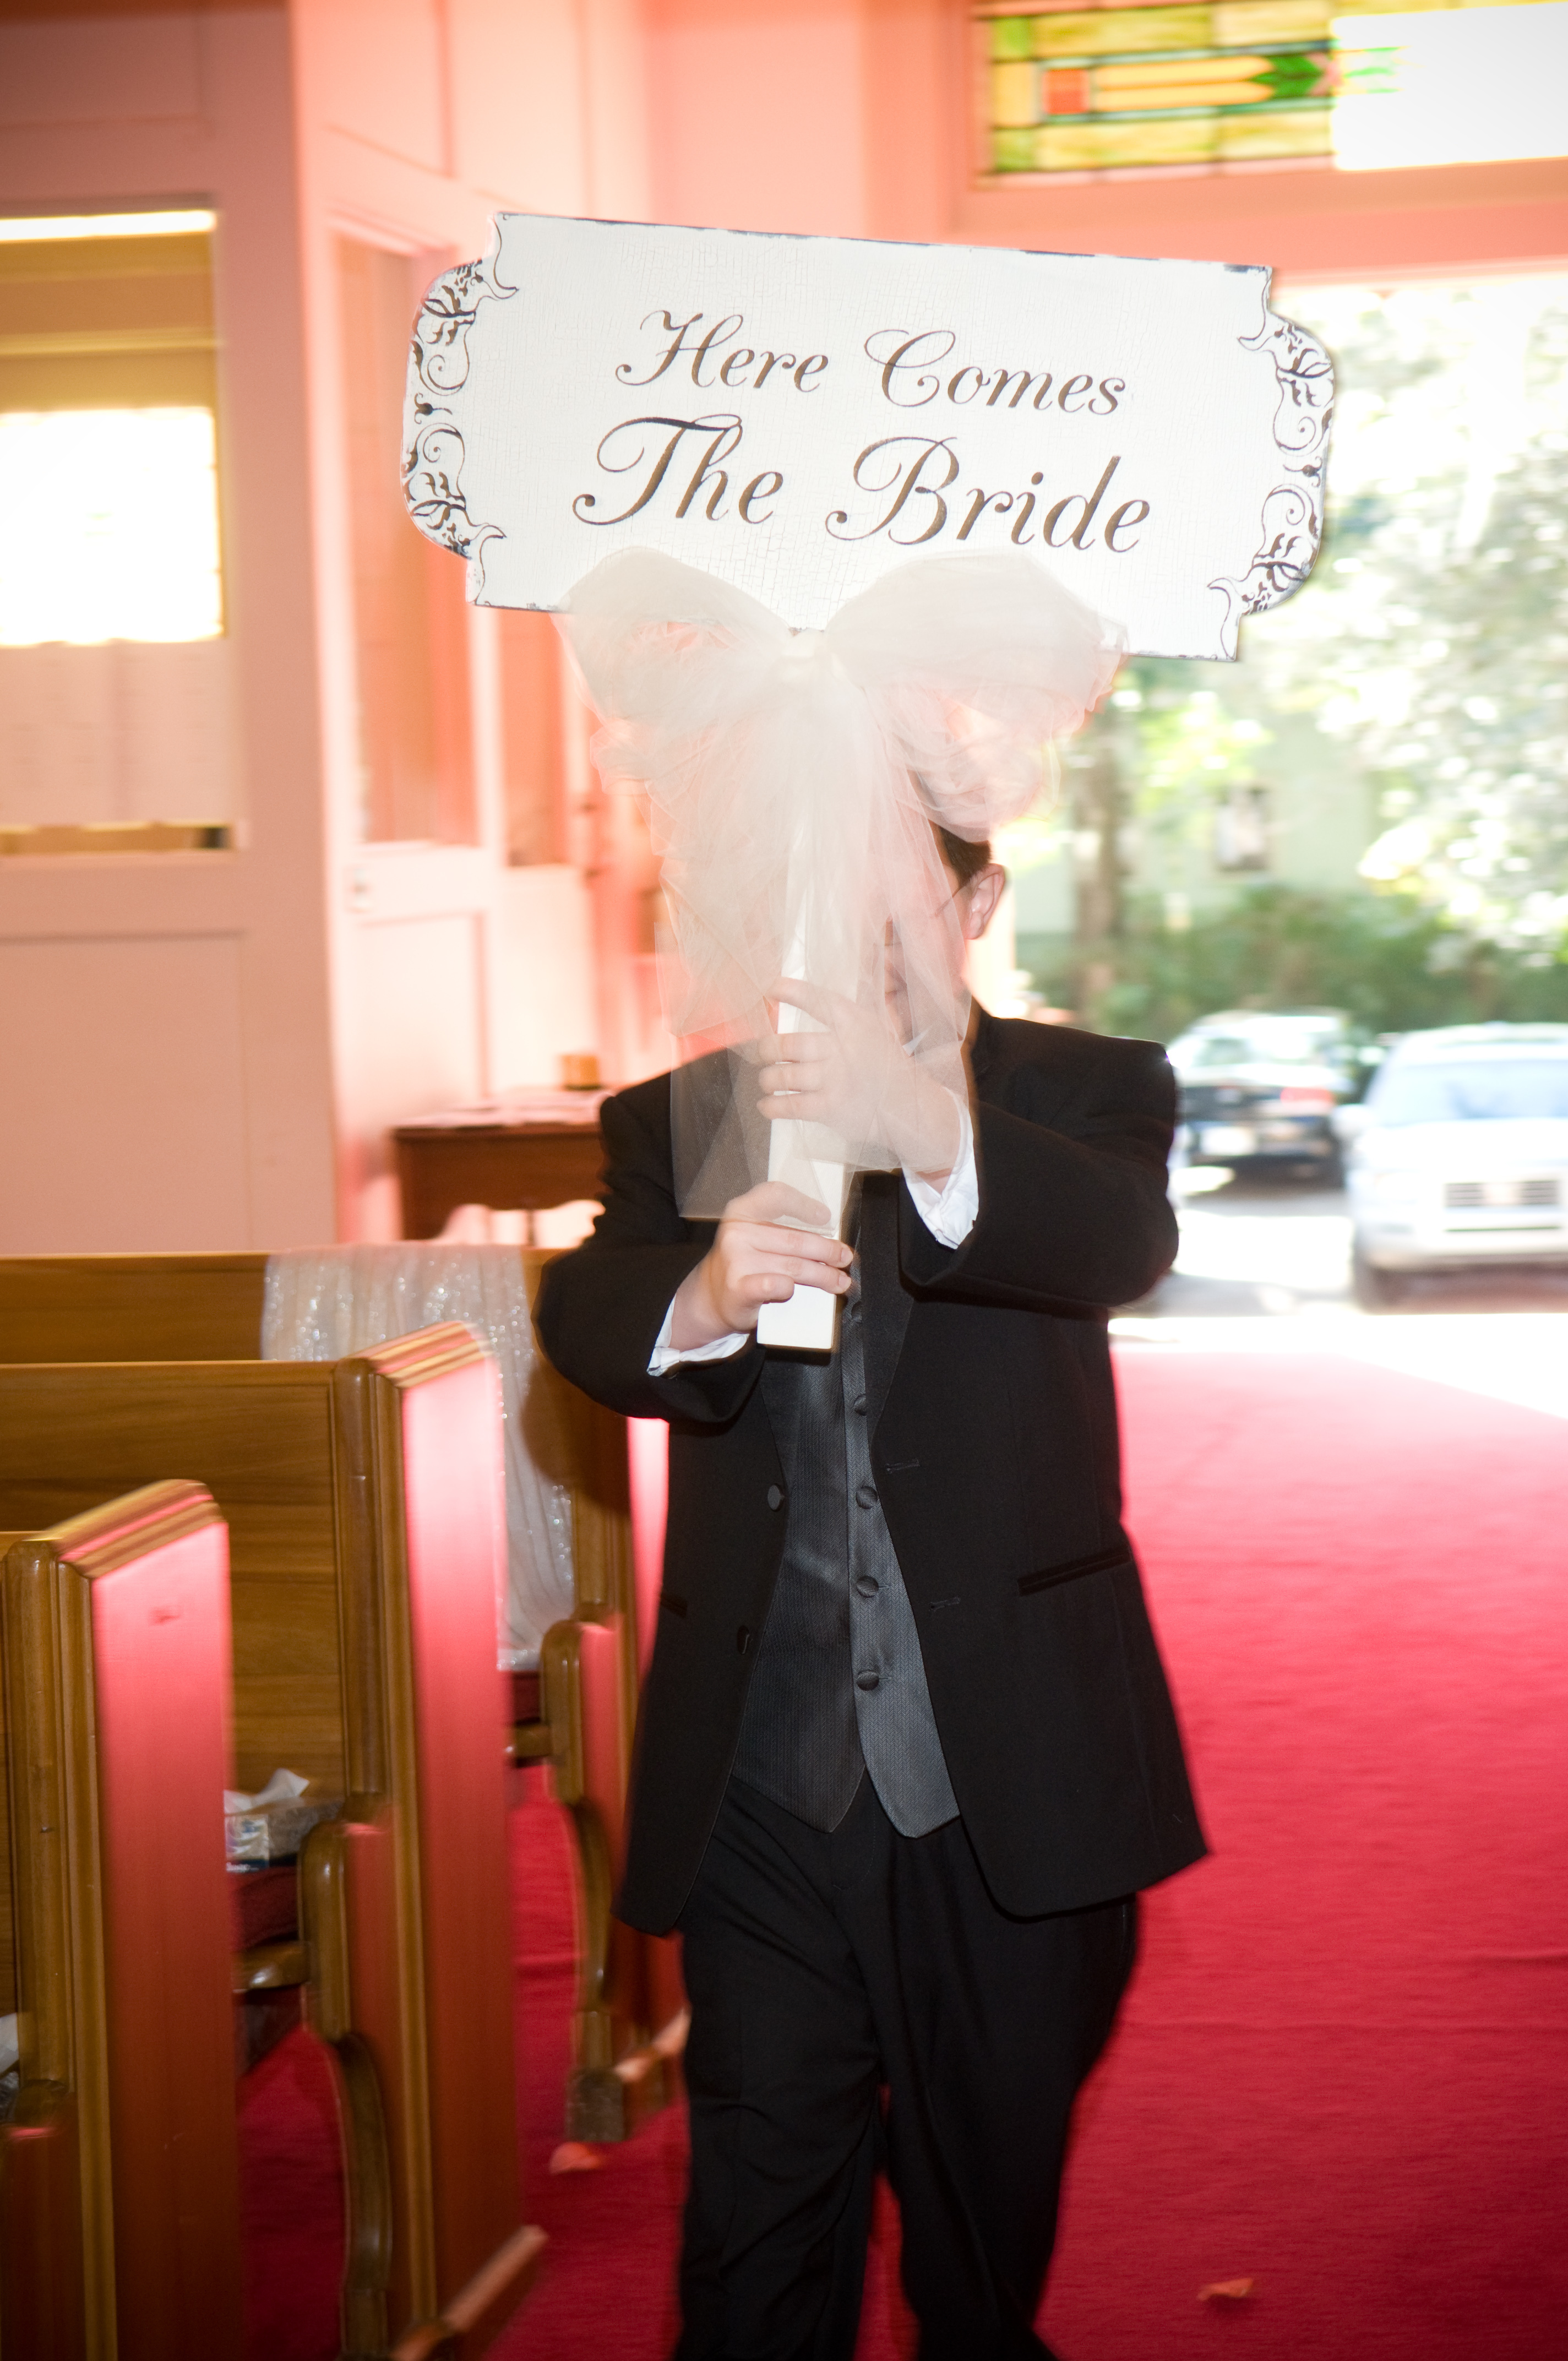 Ceremony, Flowers & Decor, Bride, The, Sign, Comes, Here